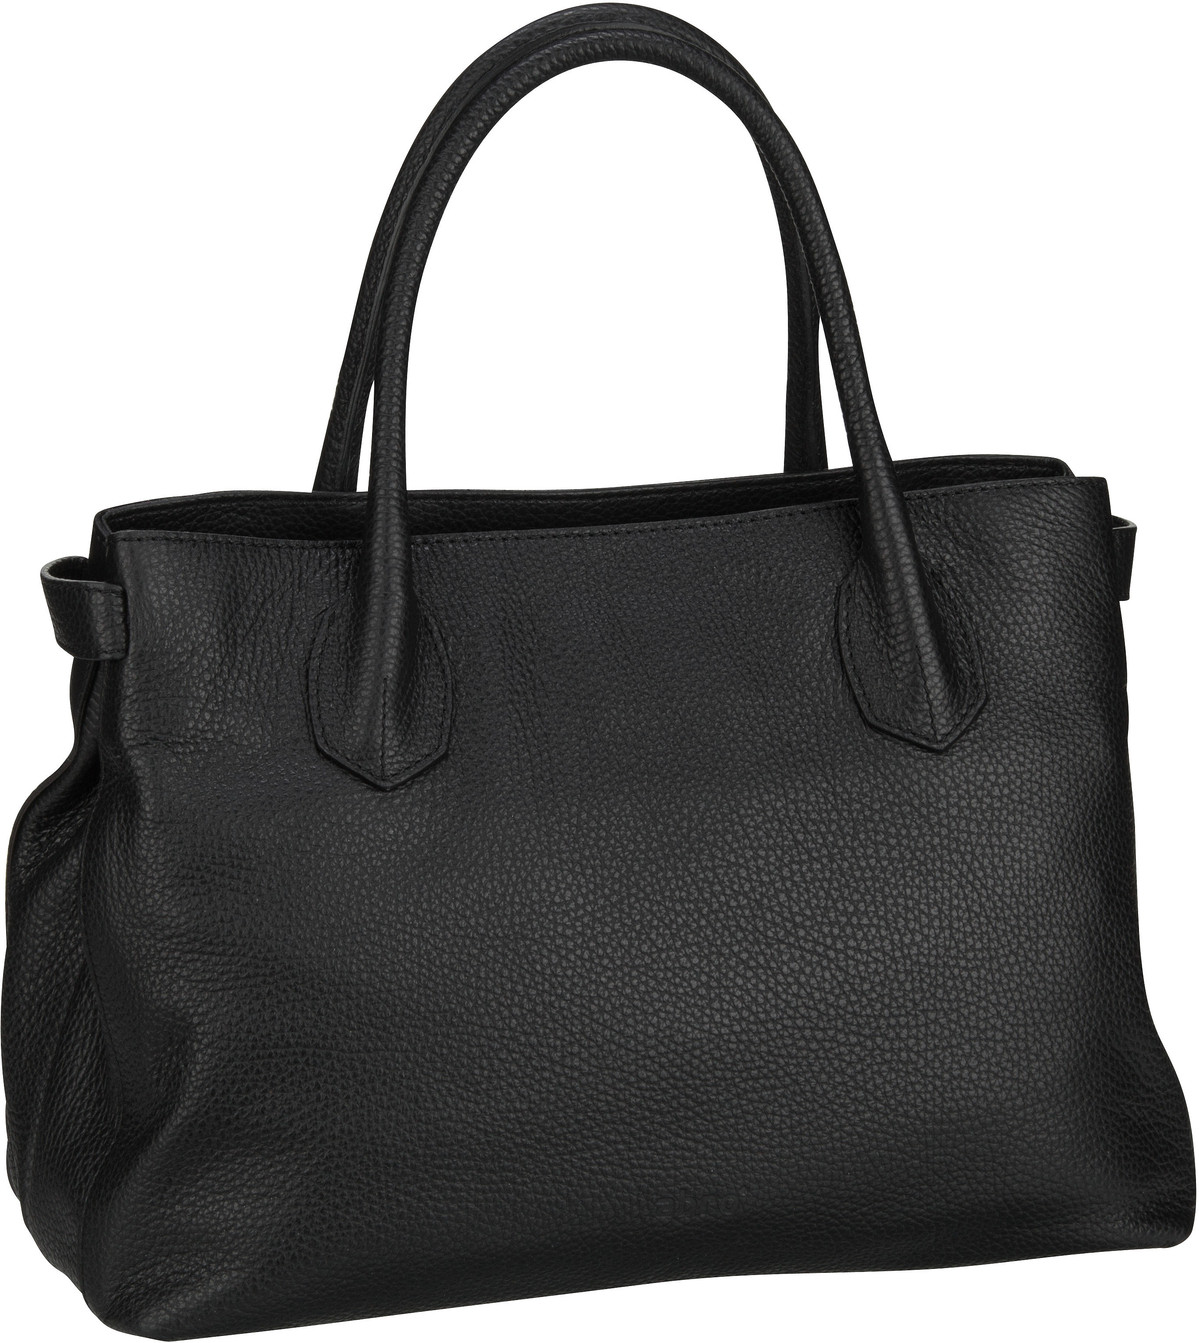 Handtasche Linna 28816 Black/Nickel